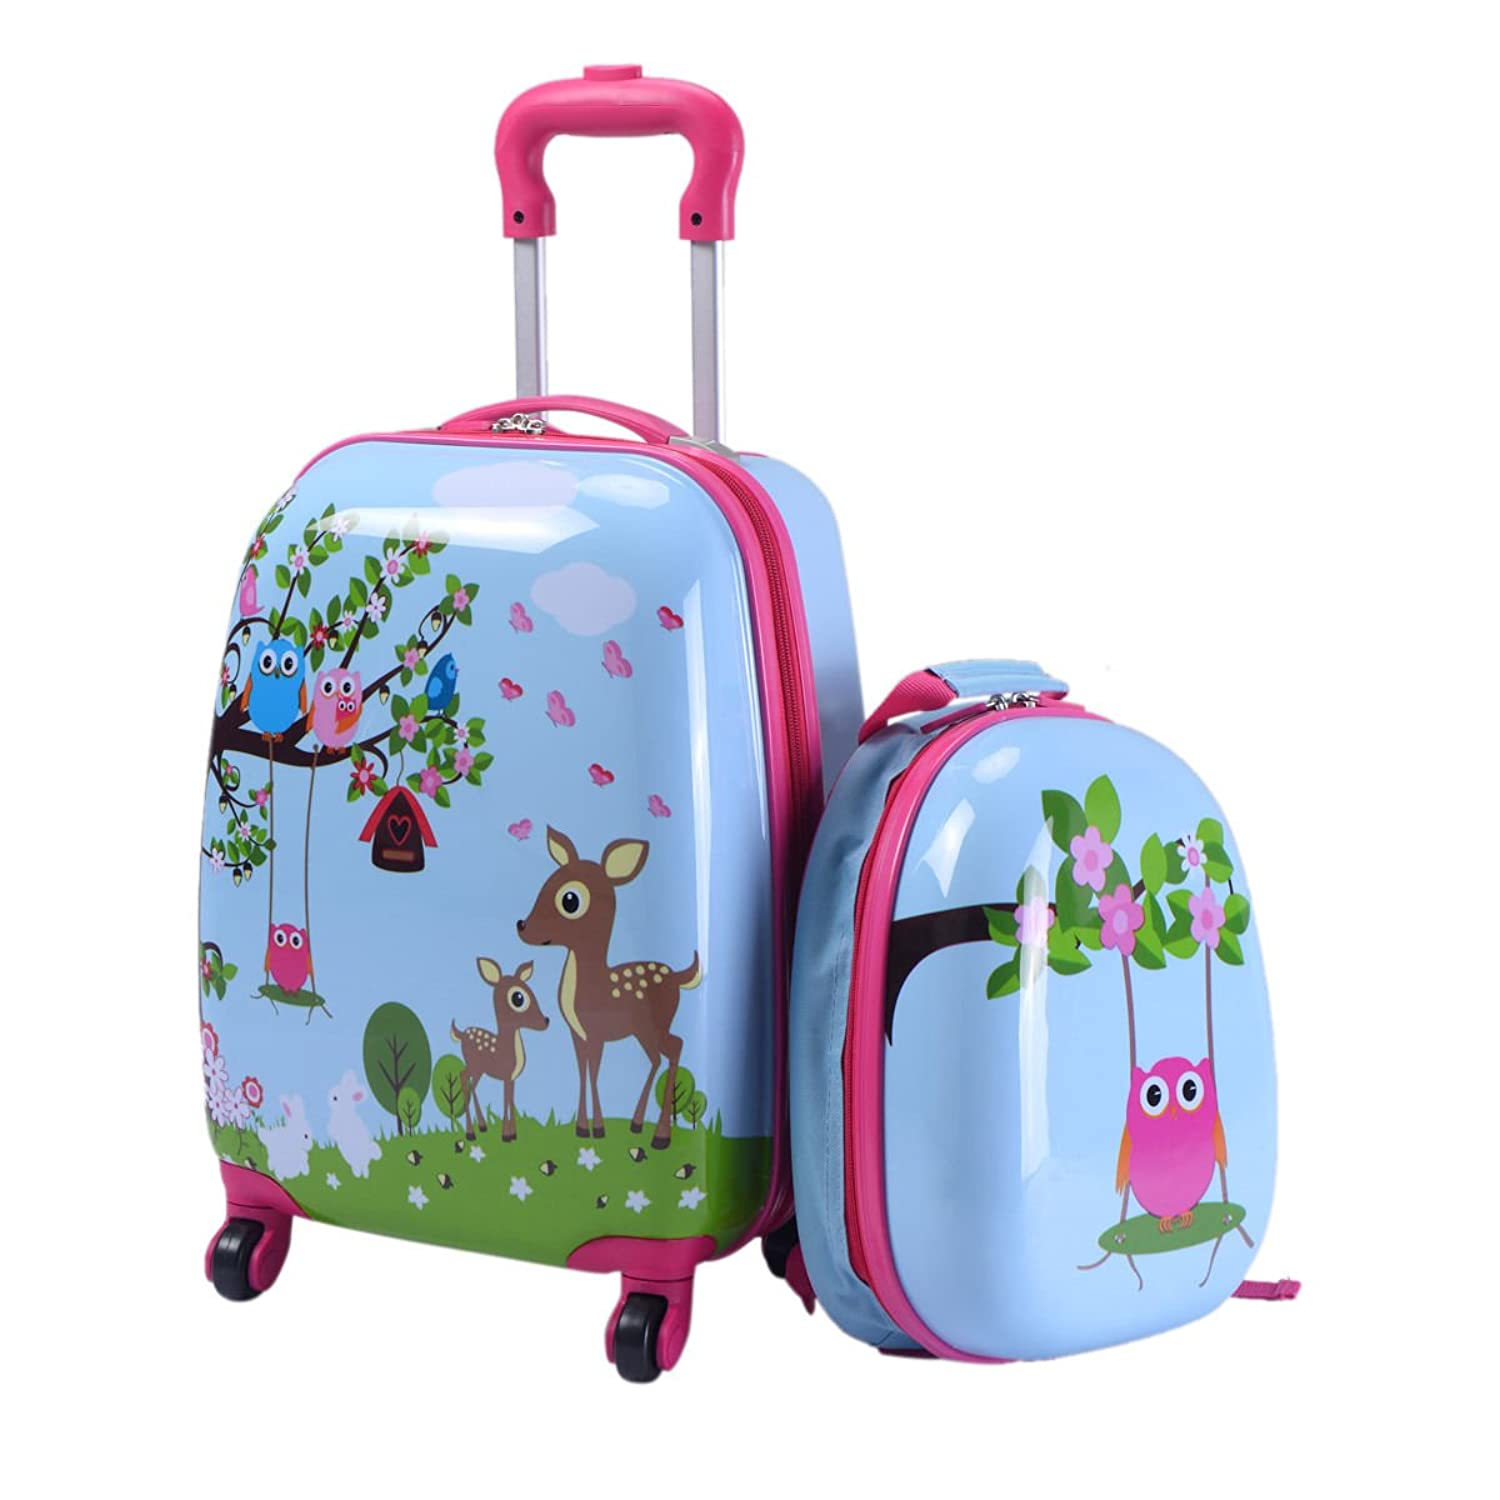 Amazon Best Sellers: Best Kids' Luggage